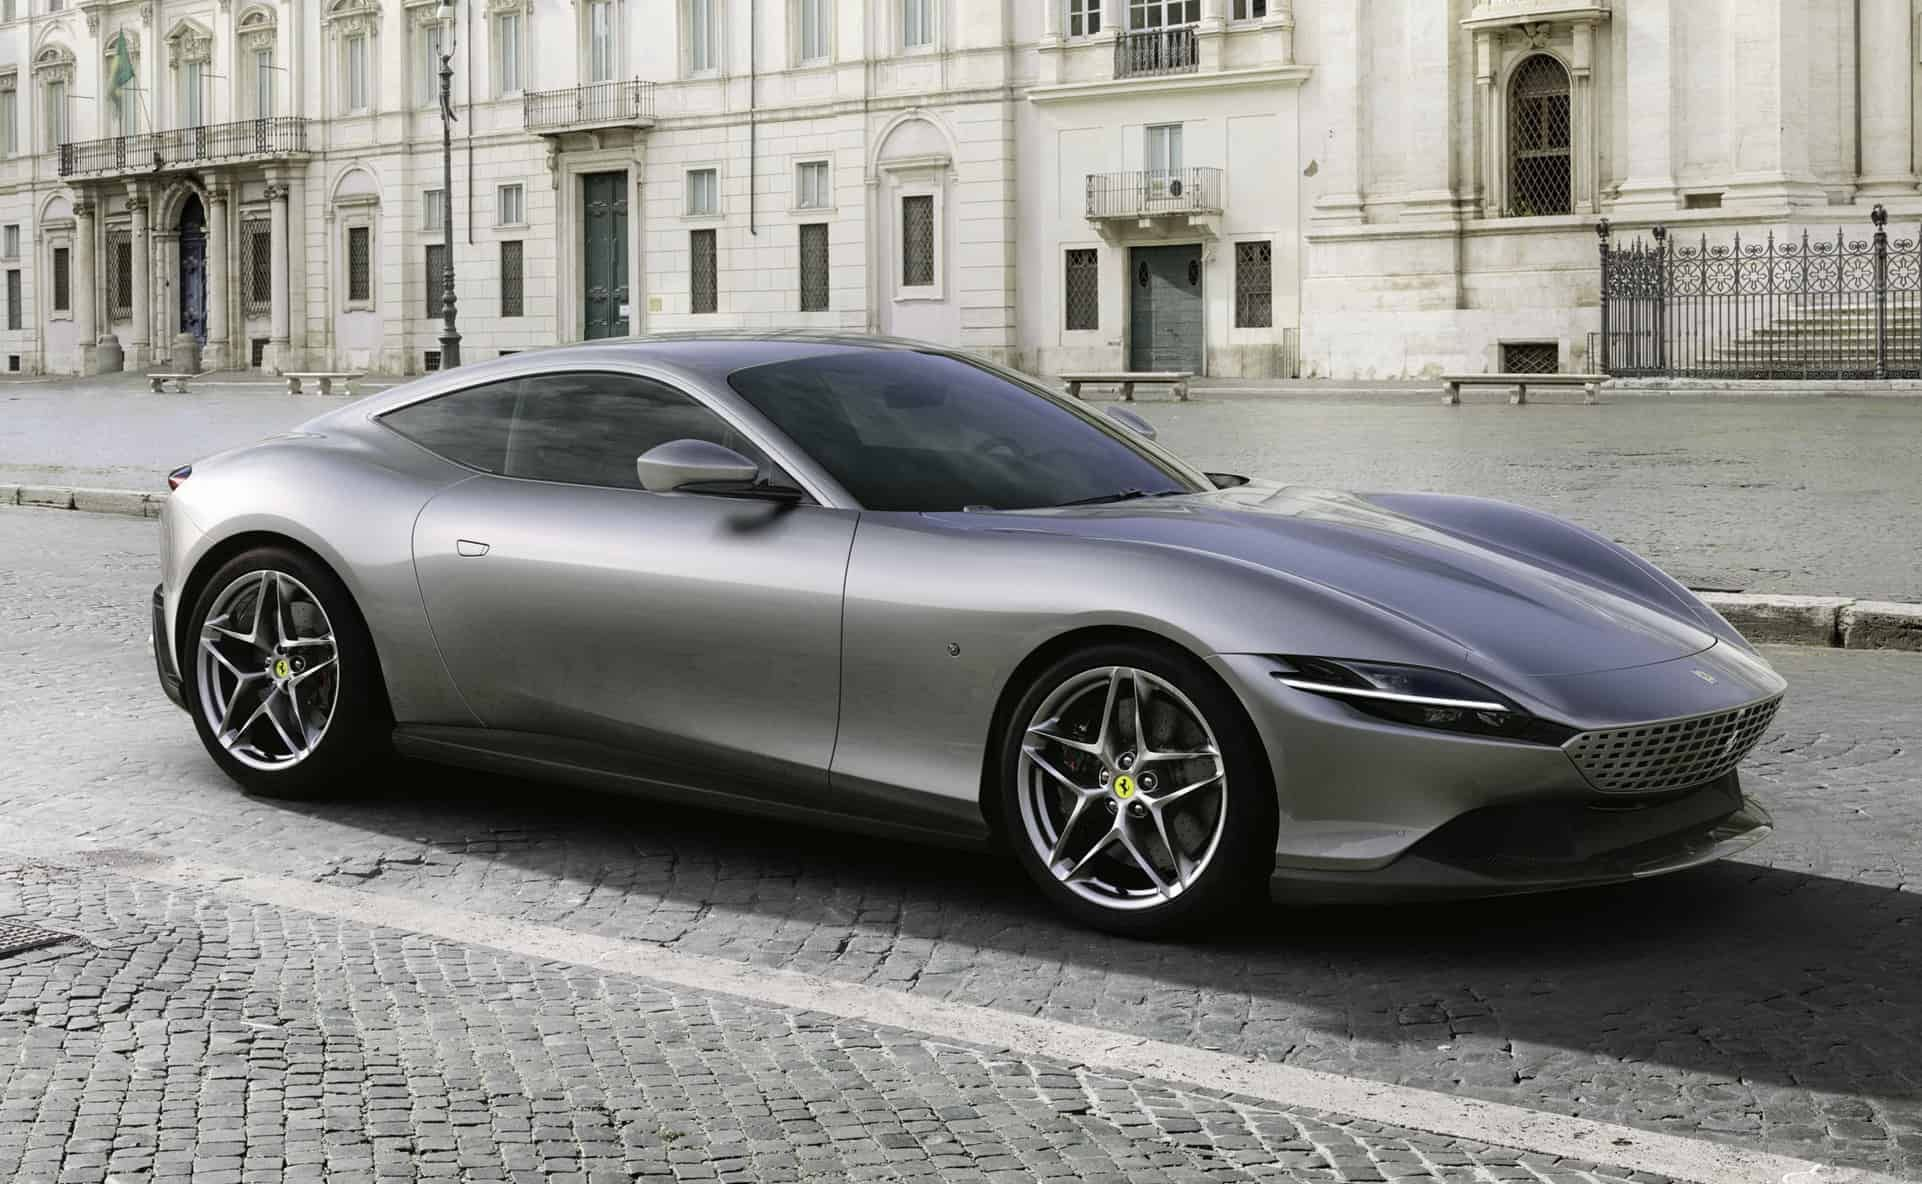 The All New Ferrari Roma Is A Timeless Front Engined Gt Car Newferrari The All New Ferrari Roma Is A Timeless Front Engined Gt Car In 2020 New Ferrari Gt Cars Ferrari